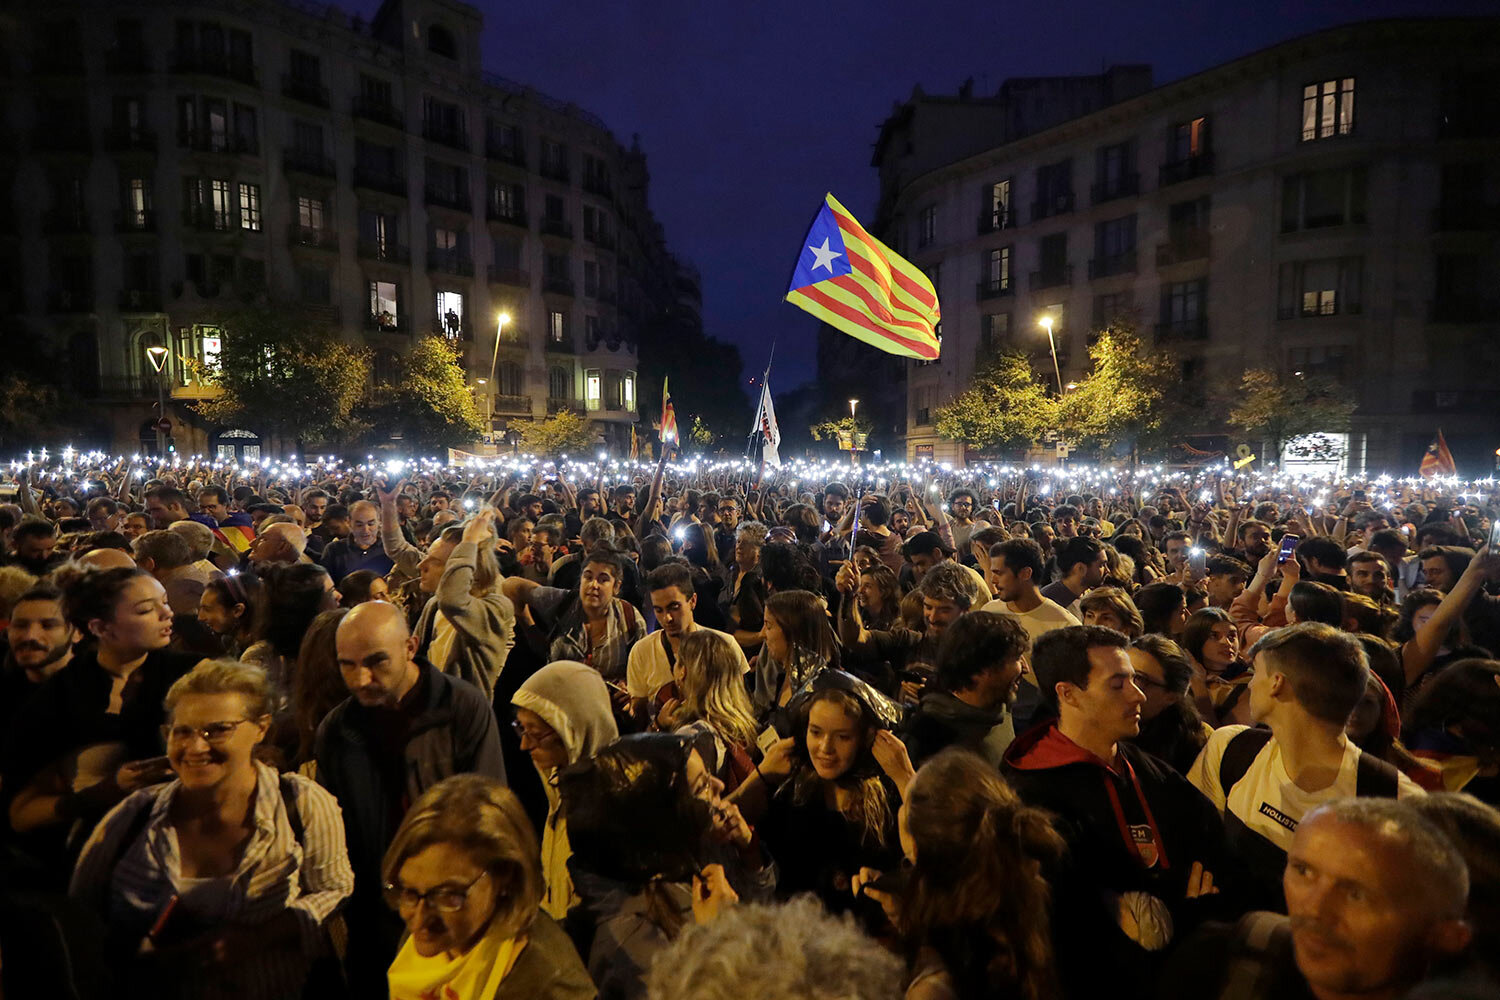 People hold up their phones with the torches switched on during a Catalan pro-independence protest in Barcelona, Spain, Sunday, Oct. 20, 2019. (AP Photo/Ben Curtis)